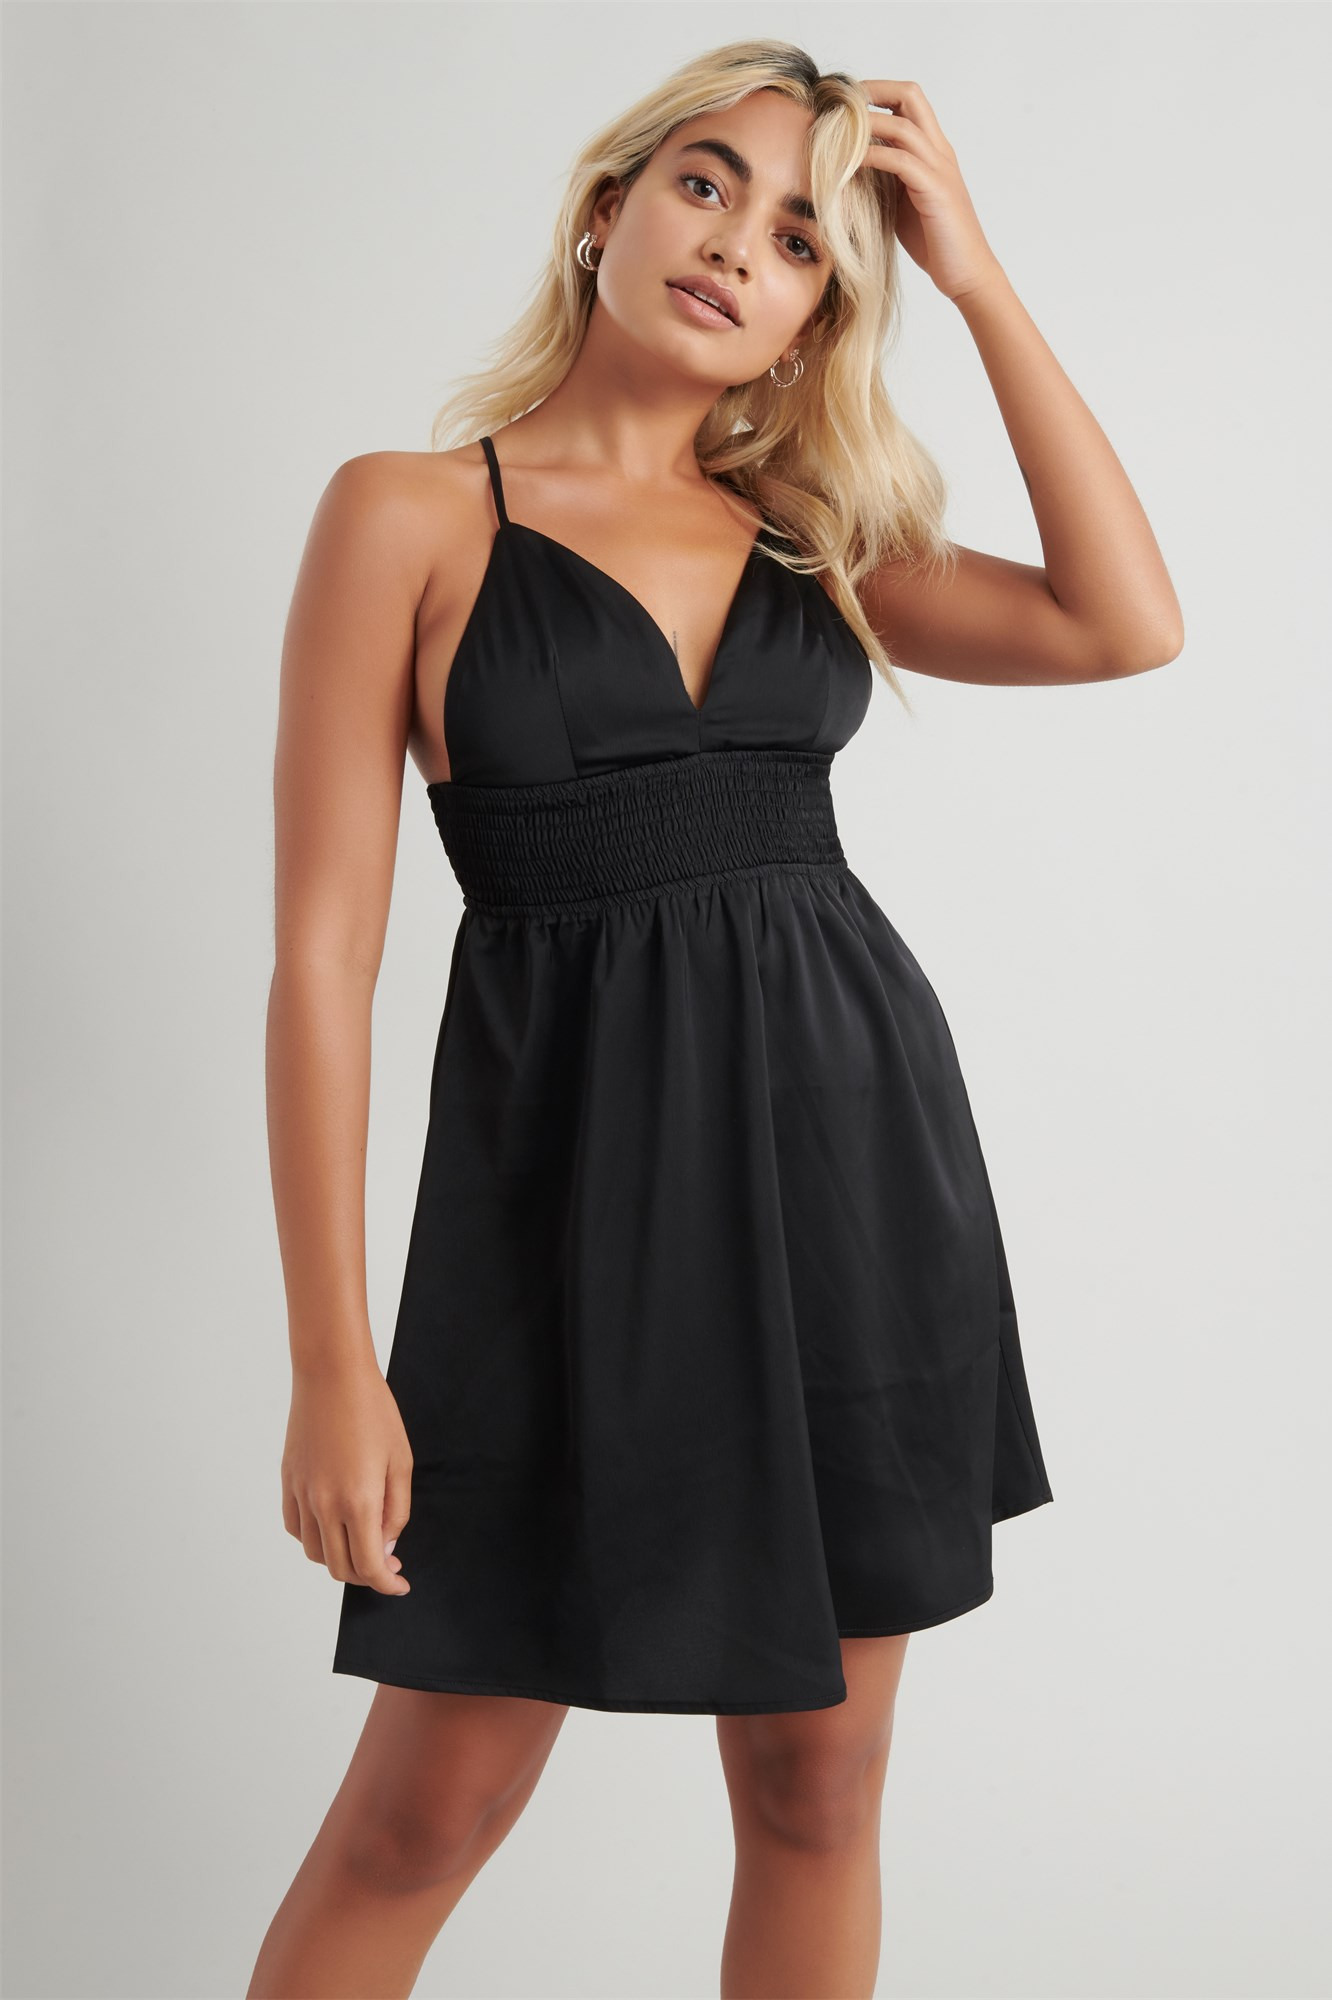 Image 2 of Satin Fit & Flare Dress